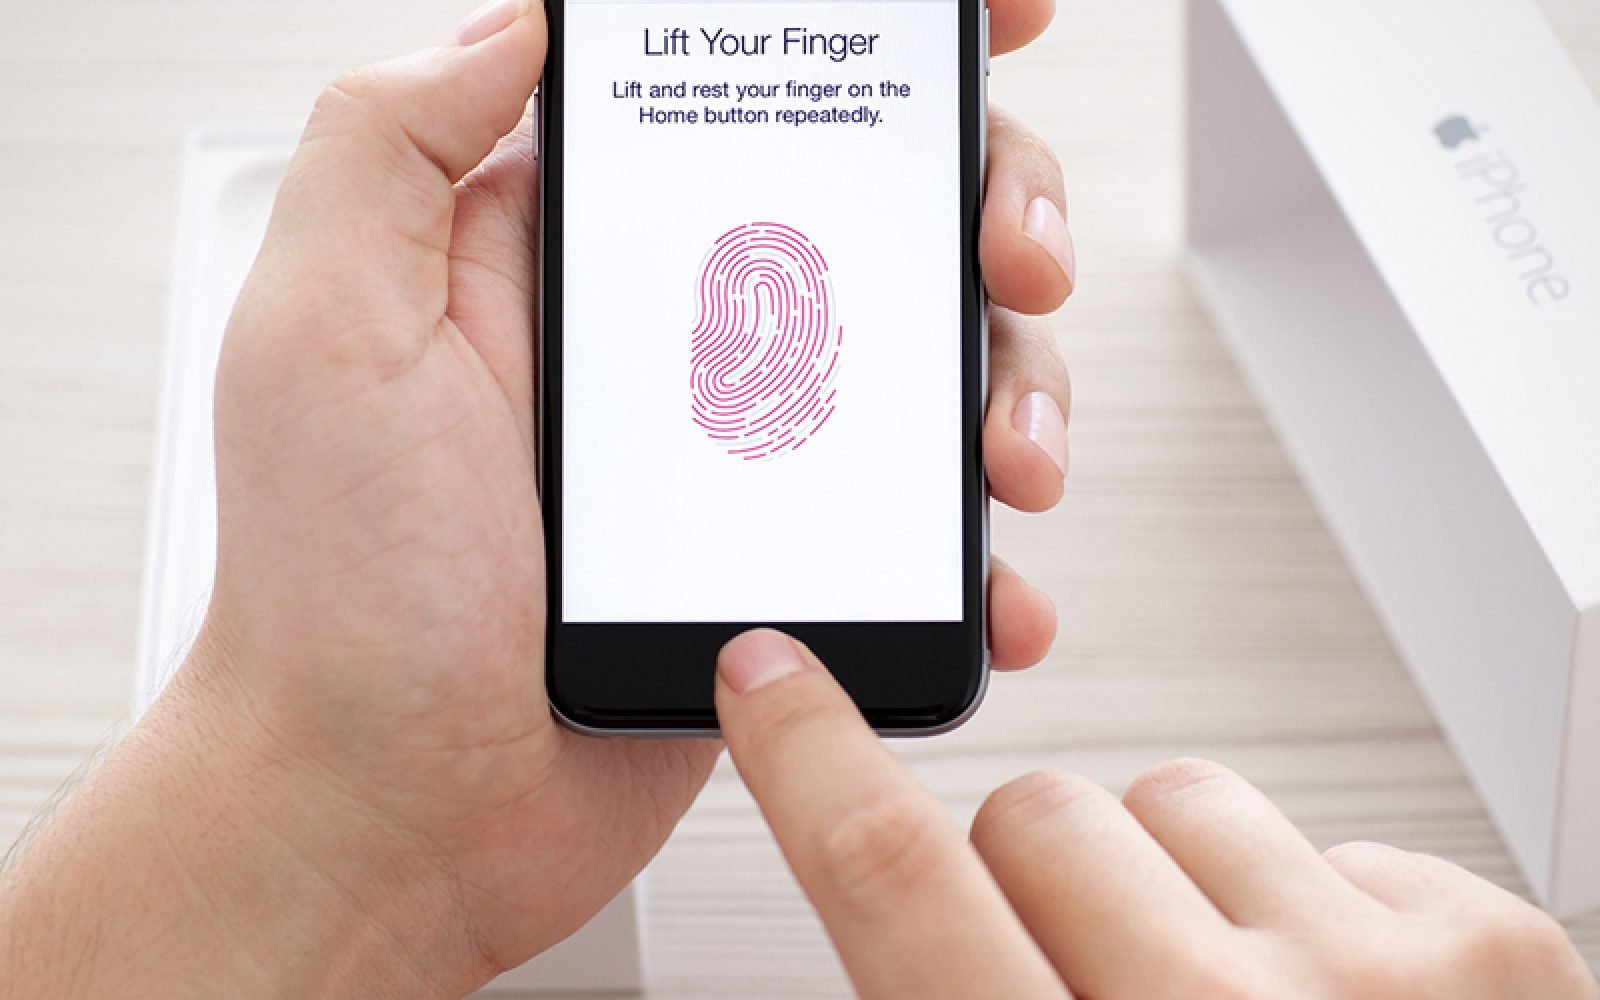 apple, apple touch id, apple face id, face id, touch id, iphone touch id, iphone face id, iphone news